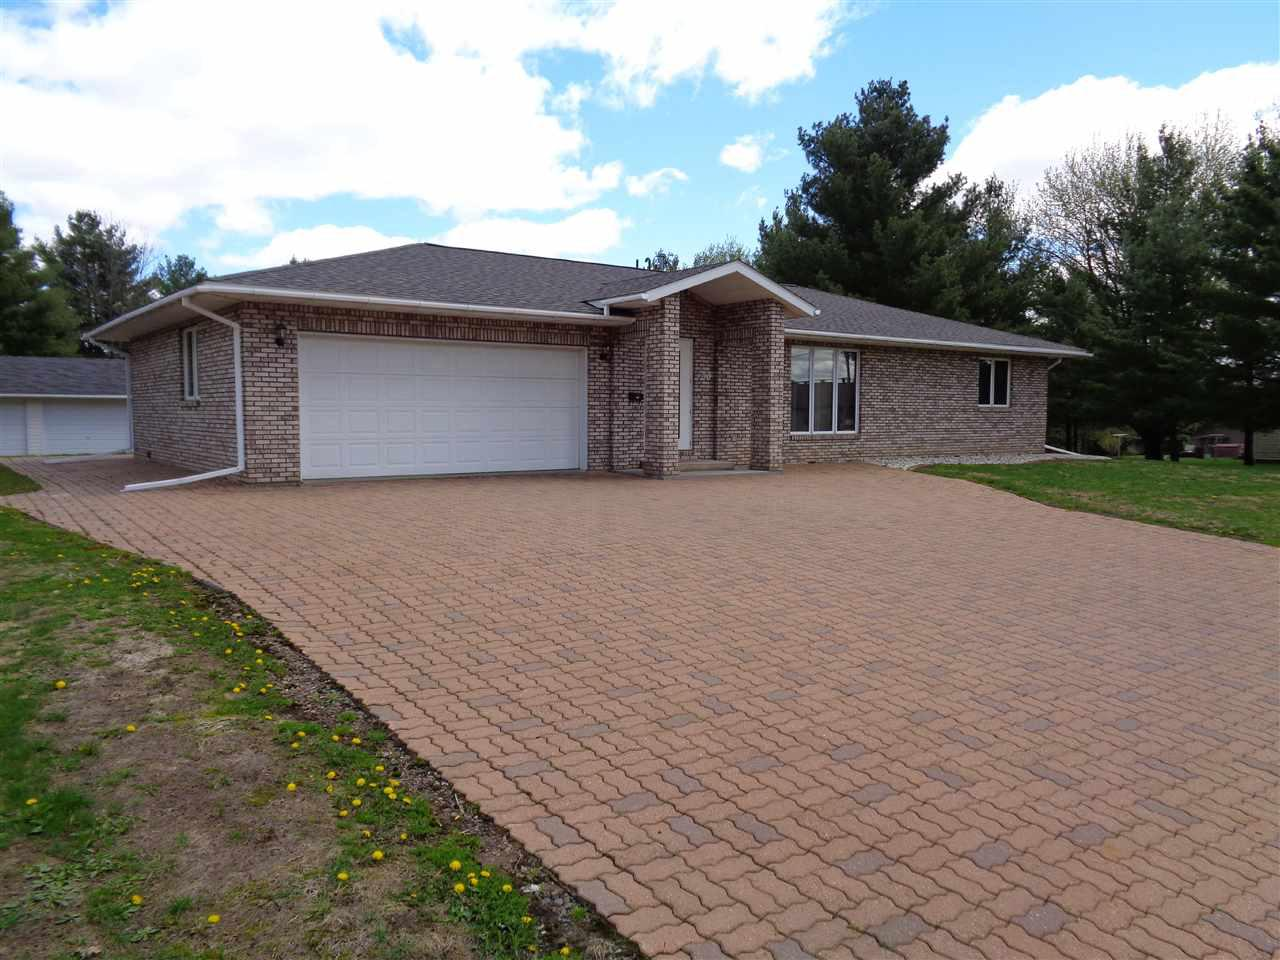 Like new all brick City of Medford home with 2 bedrooms and 3 bathrooms. Kitchen has tile floor and oak cabinets. Spacious family room with exercise room, craft room and office on the lower level. Terra lock concrete block driveway and patio. Heated attached 2 car garage and 3 car detached garage/shop. Stove, refrigerator, dishwasher, microwave, washer, dryer, and all window coverings are included in the sale price.